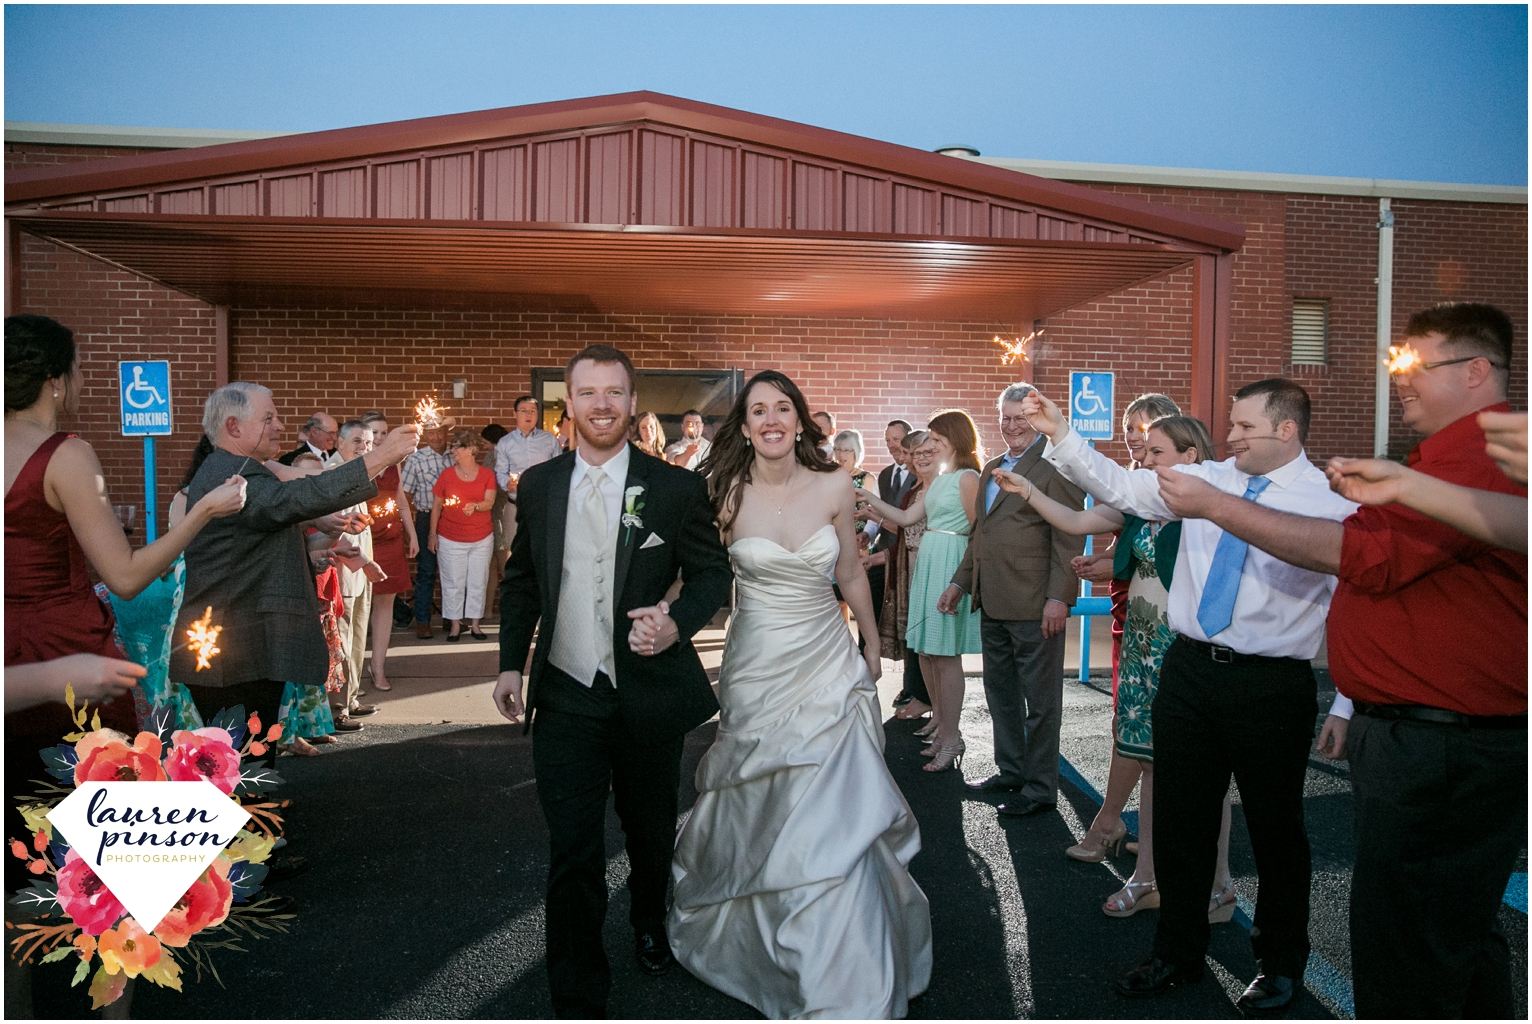 wichita-falls-wedding-photographer-OUR-Lady-queen-of-peace-catholic-wedding-the-forum-photography_0969.jpg